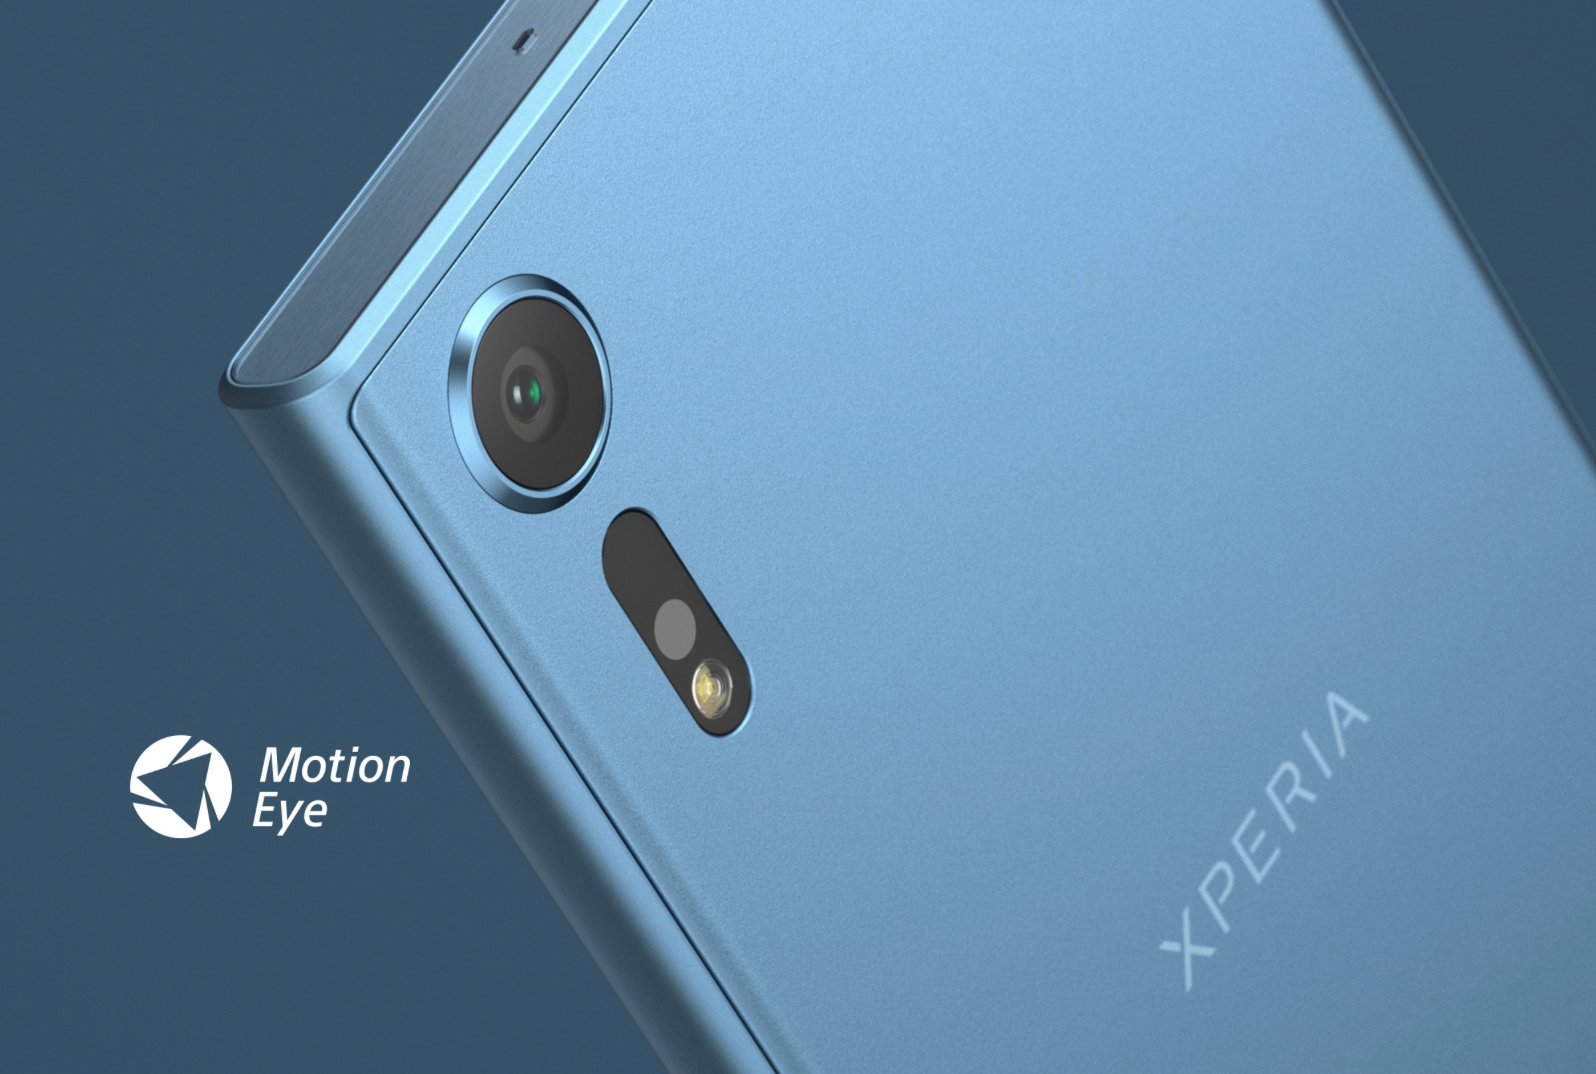 Install Xperia XZs Camera App - Record Slow Motion Videos with one click